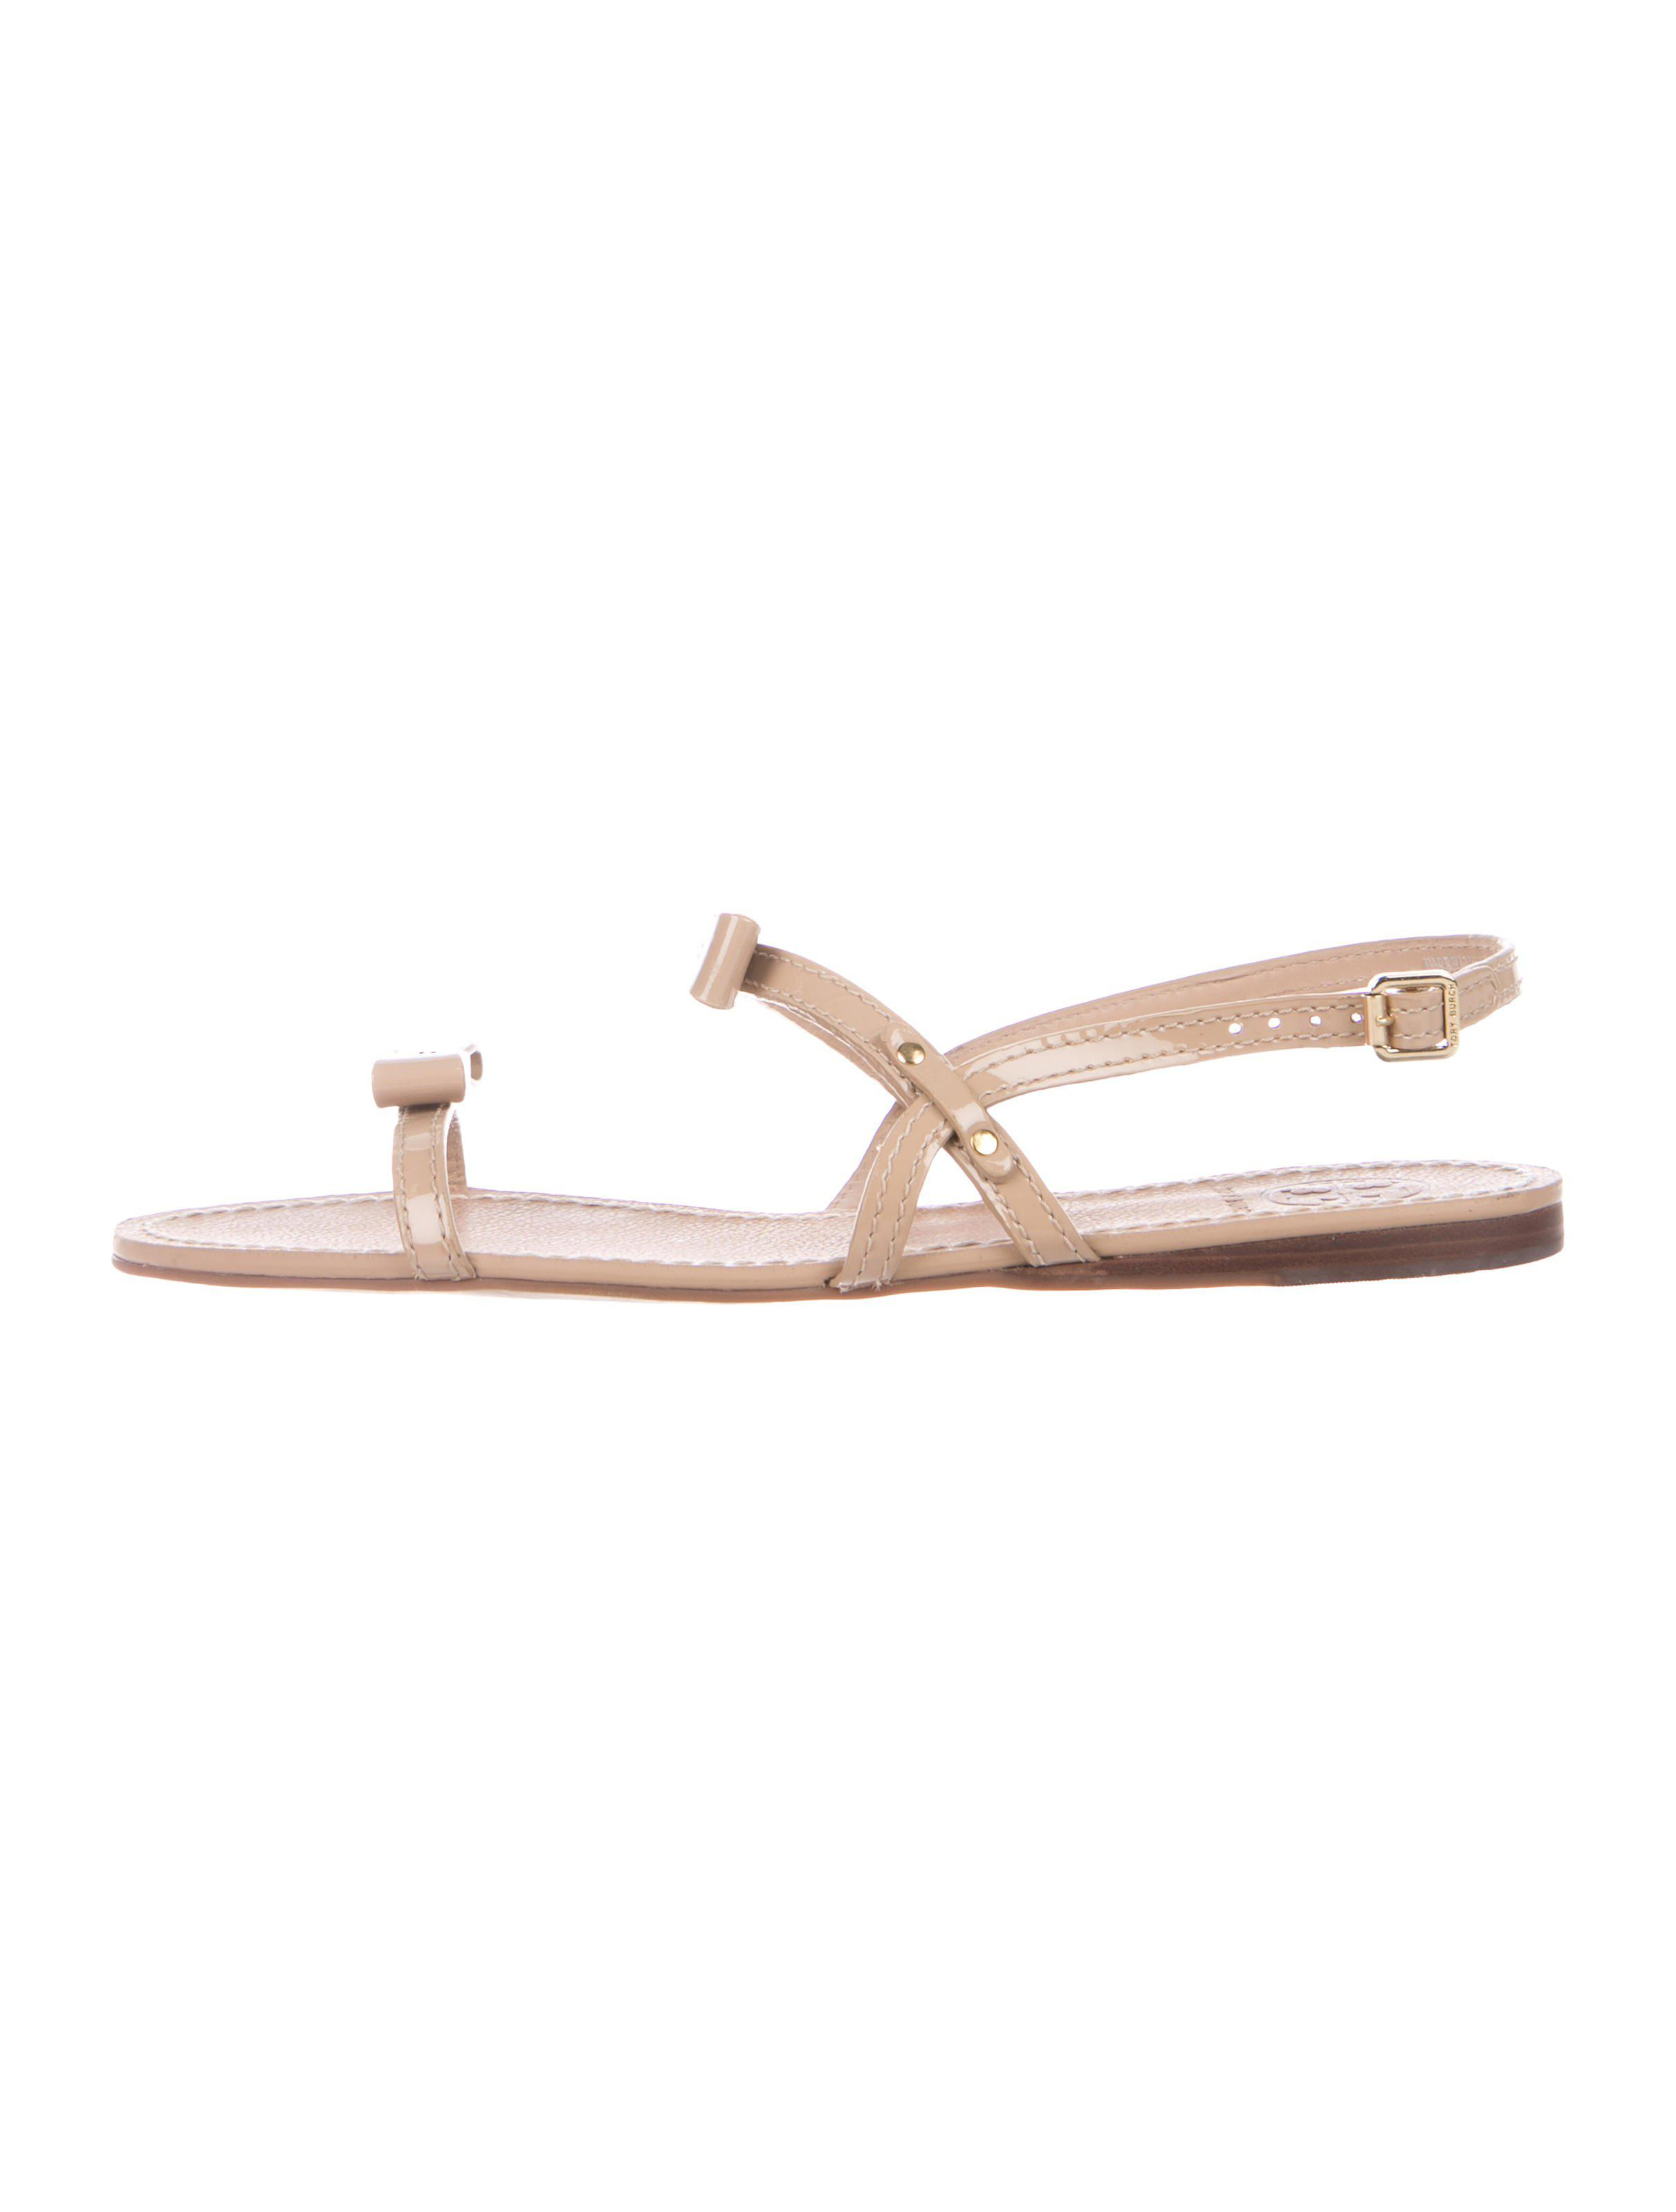 45bcebc77eb6 Lyst - Tory Burch Kailey Patent Leather Sandals Tan in Metallic